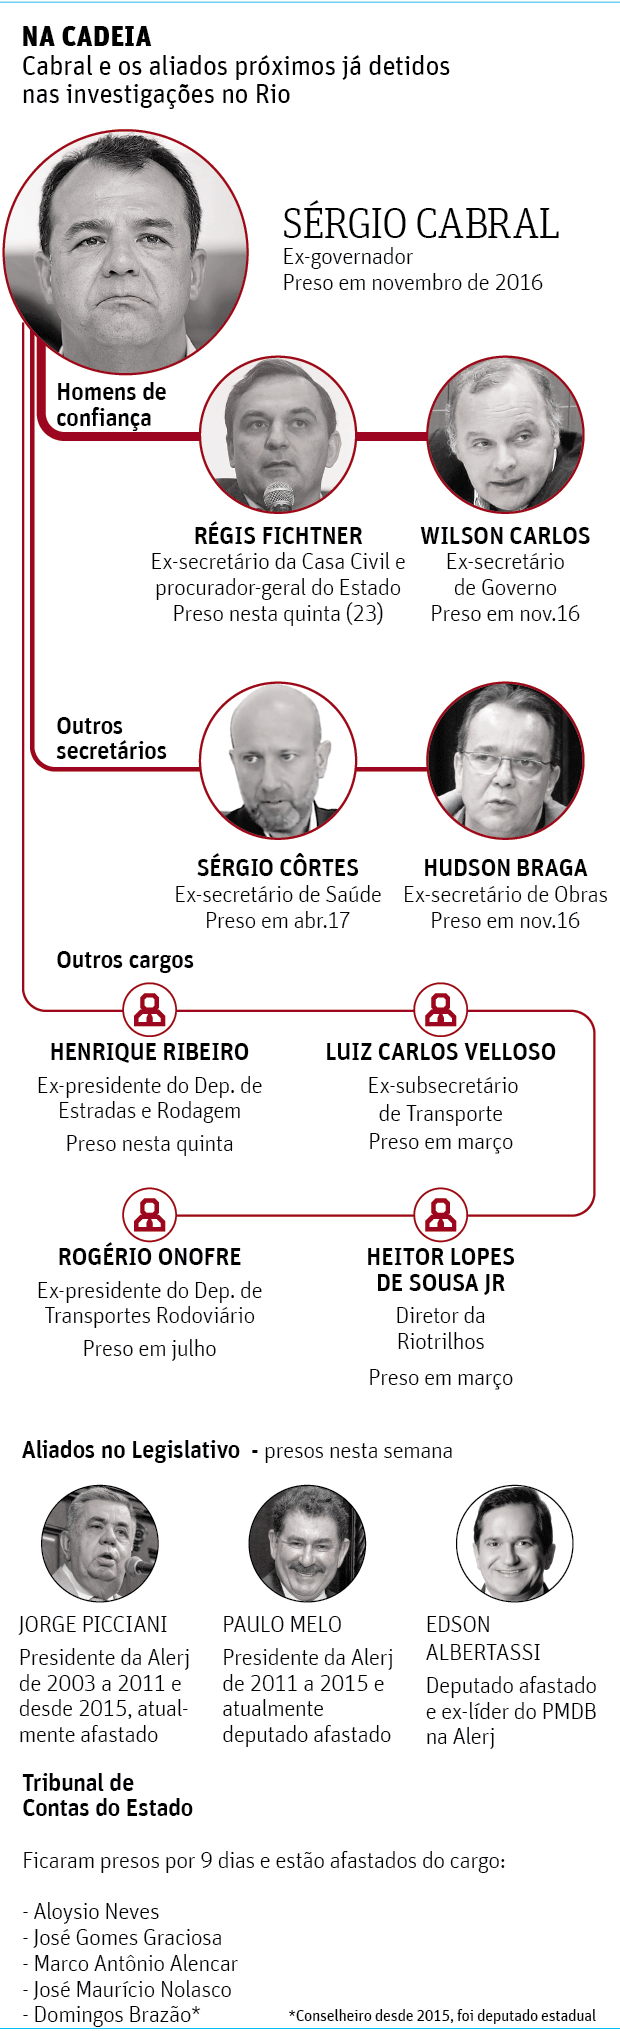 A gangue do guardanapo - 24.11.2017 / Folhapress